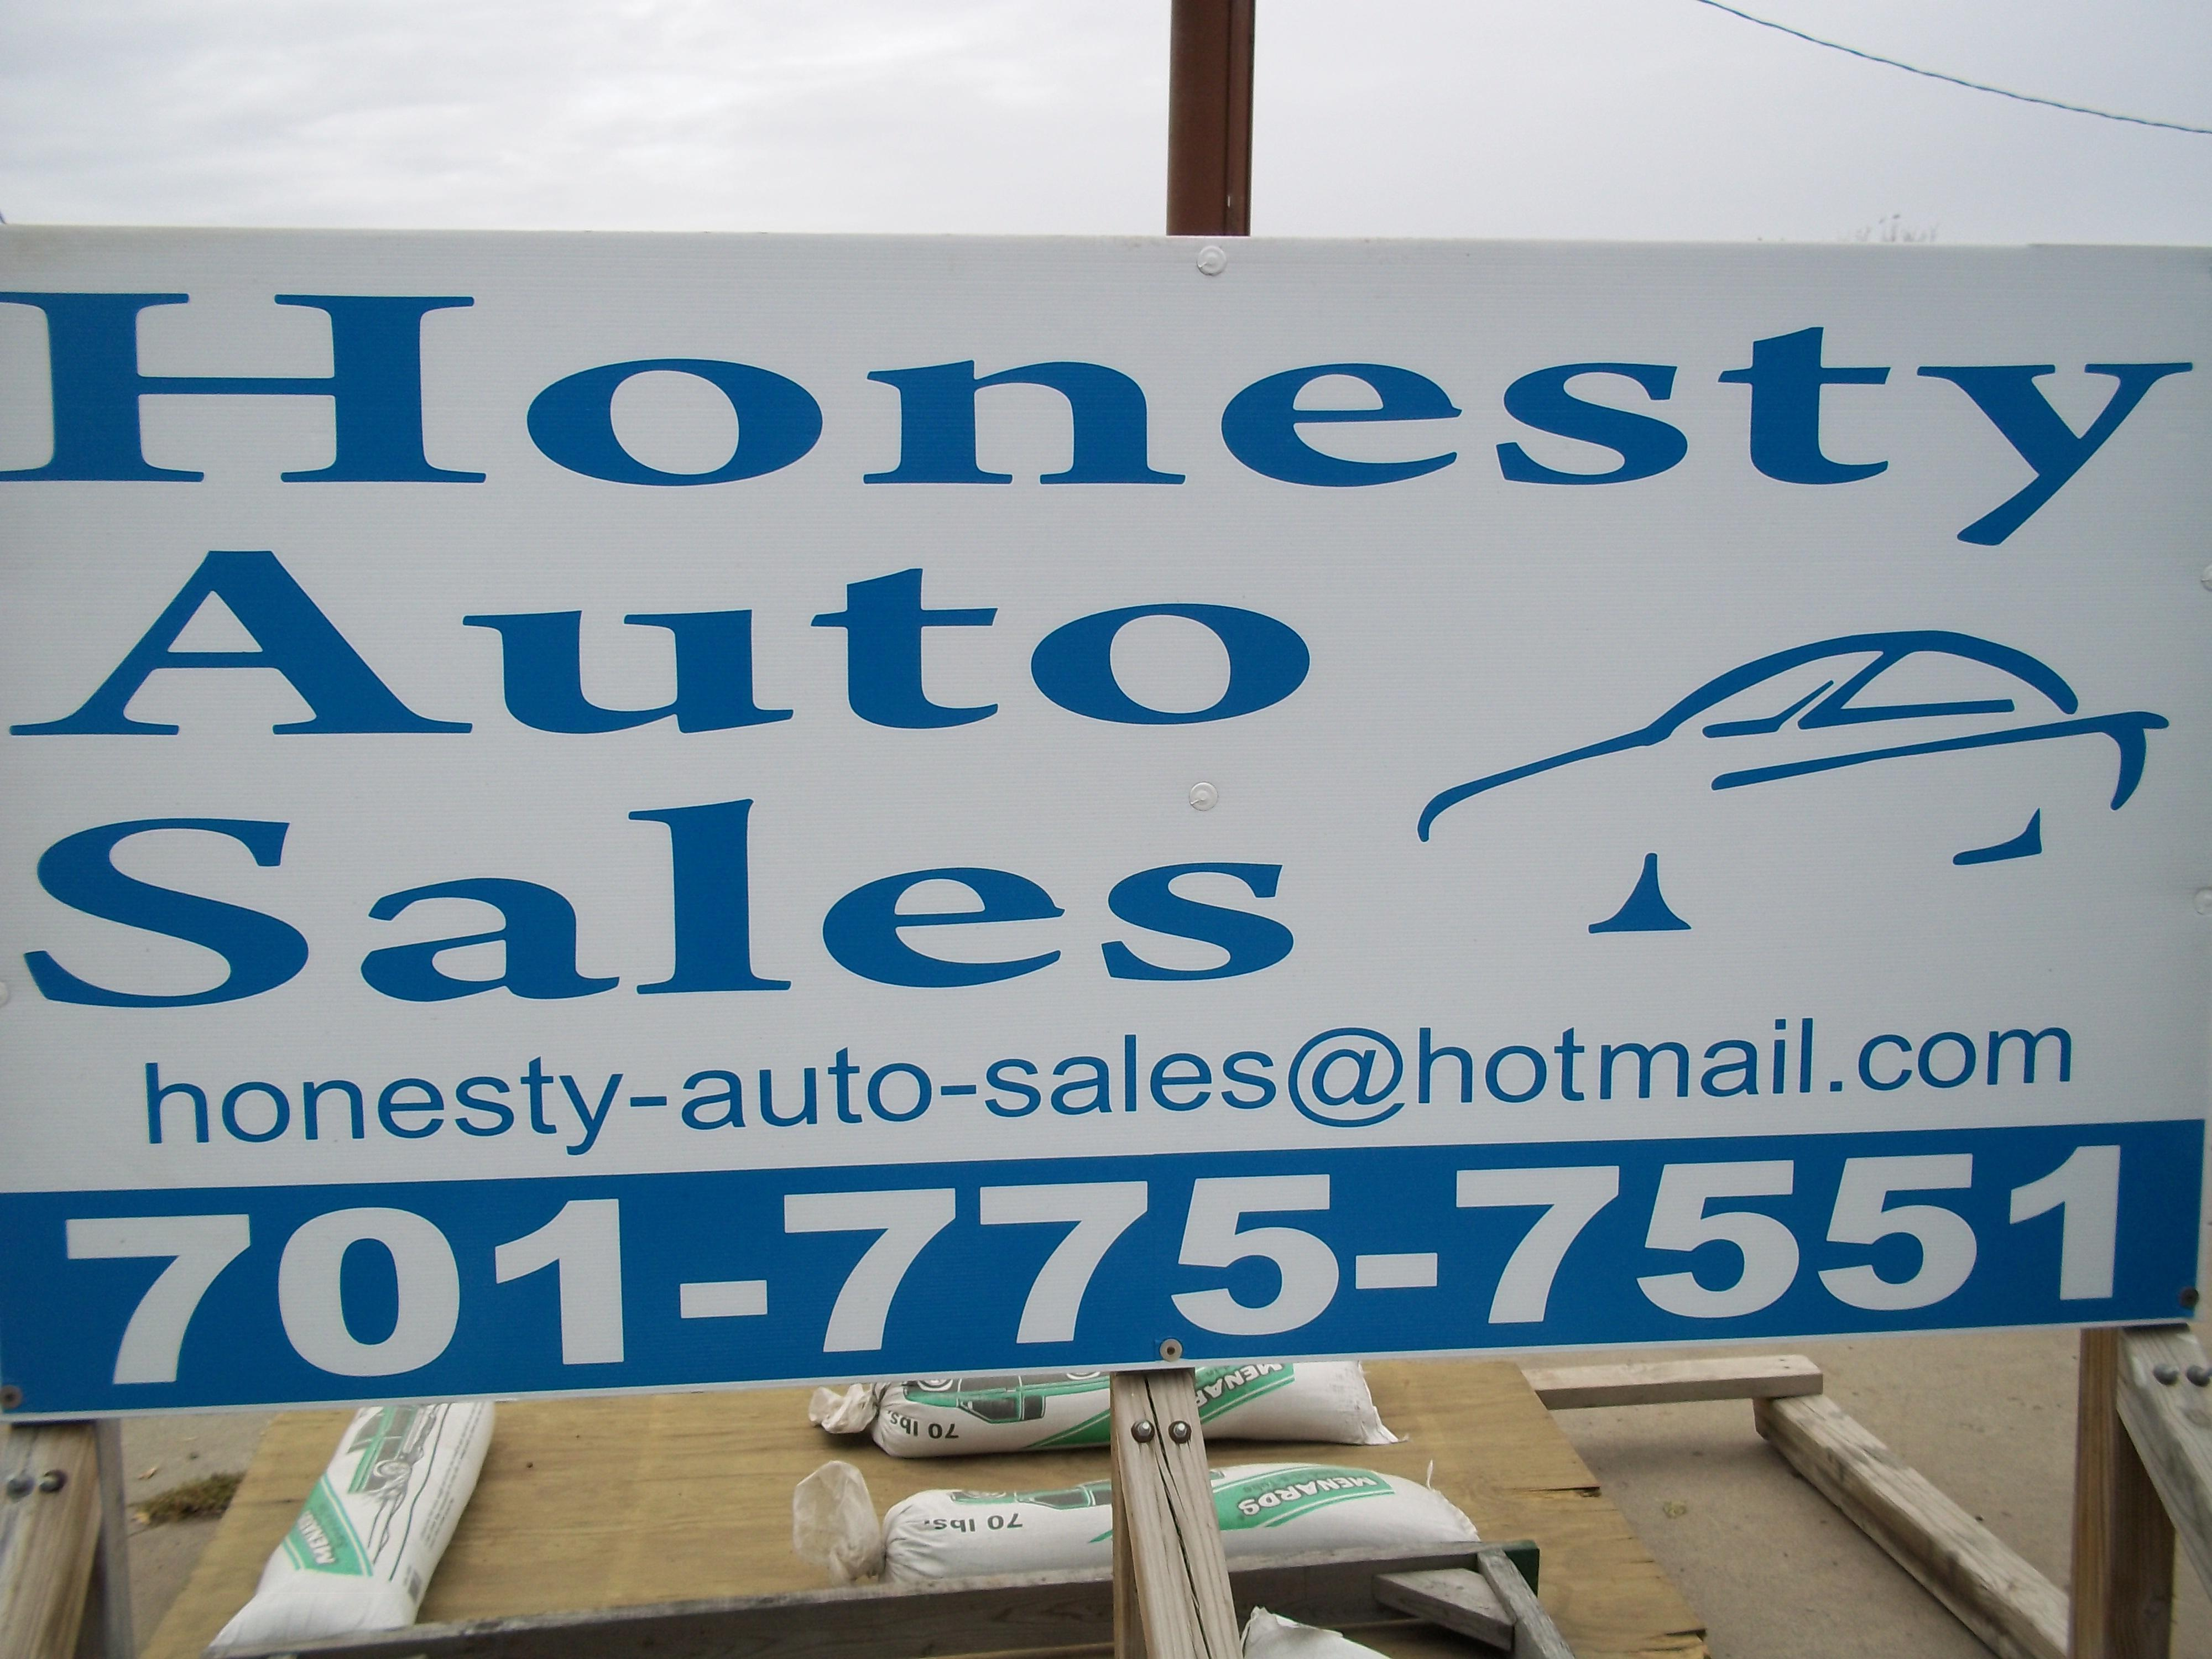 Businesses Auto Dealers Datasphere